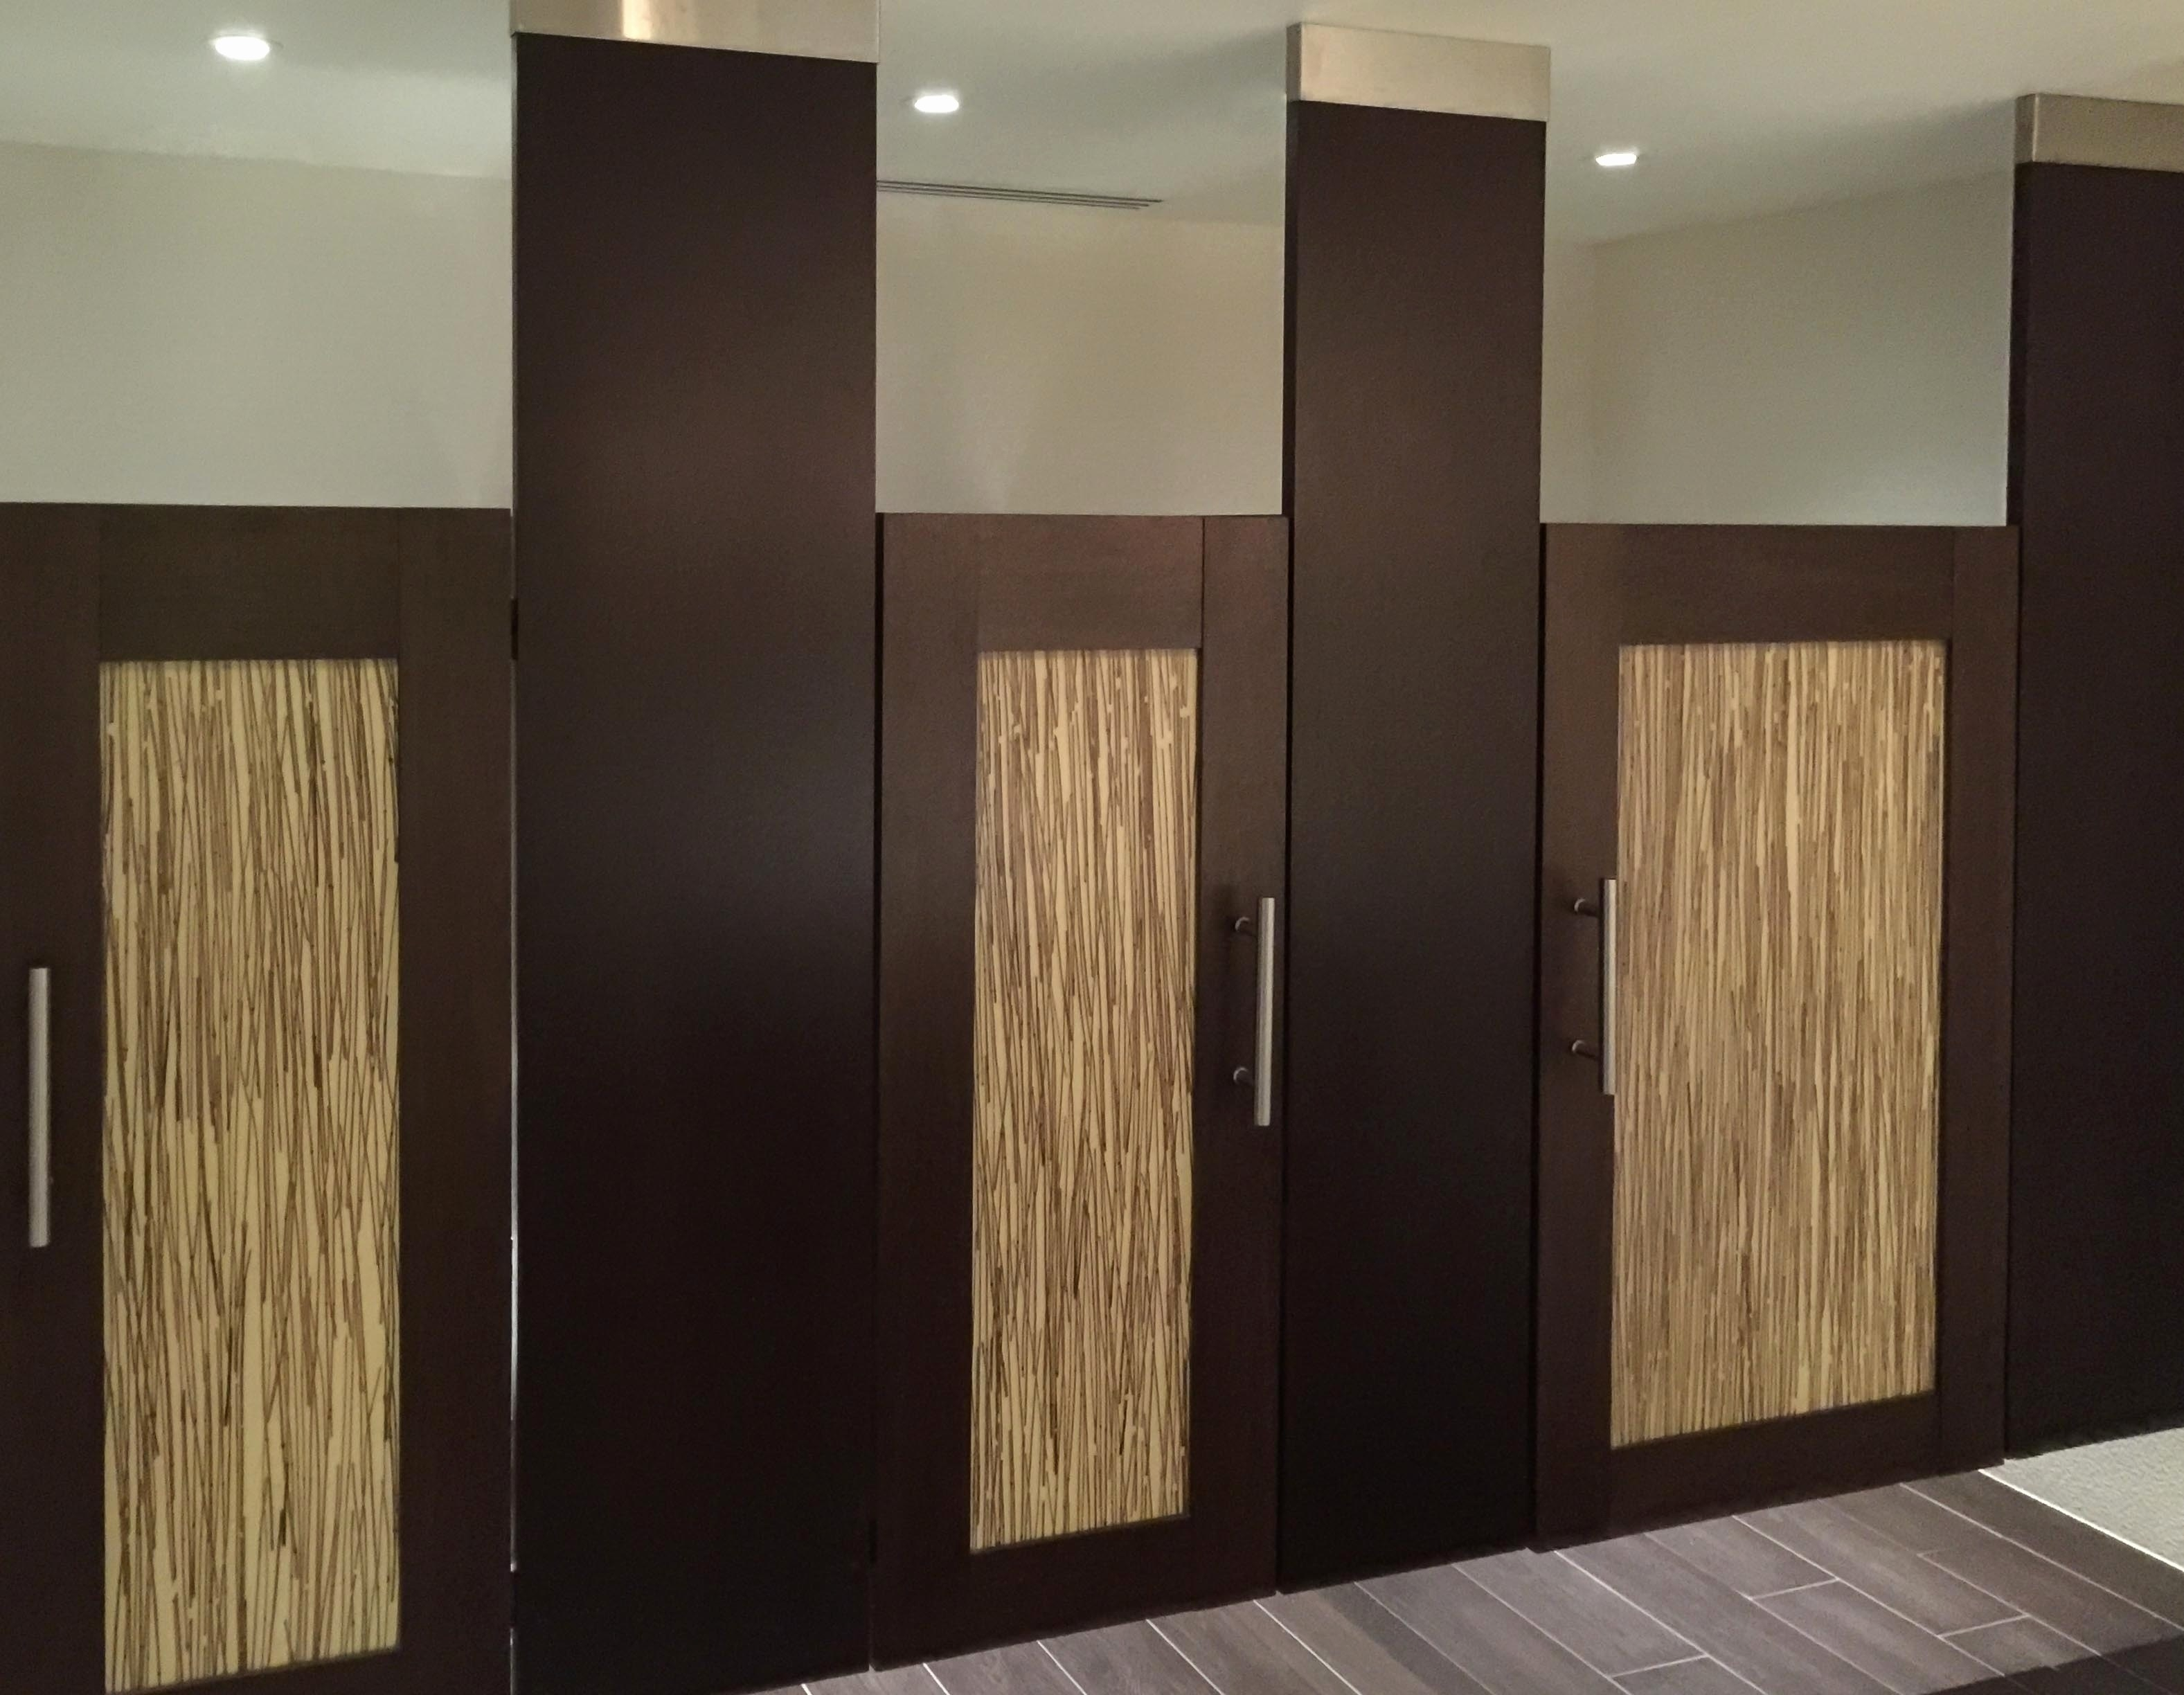 To Remove Bathroom Stall Doors - Madison Art Center Design